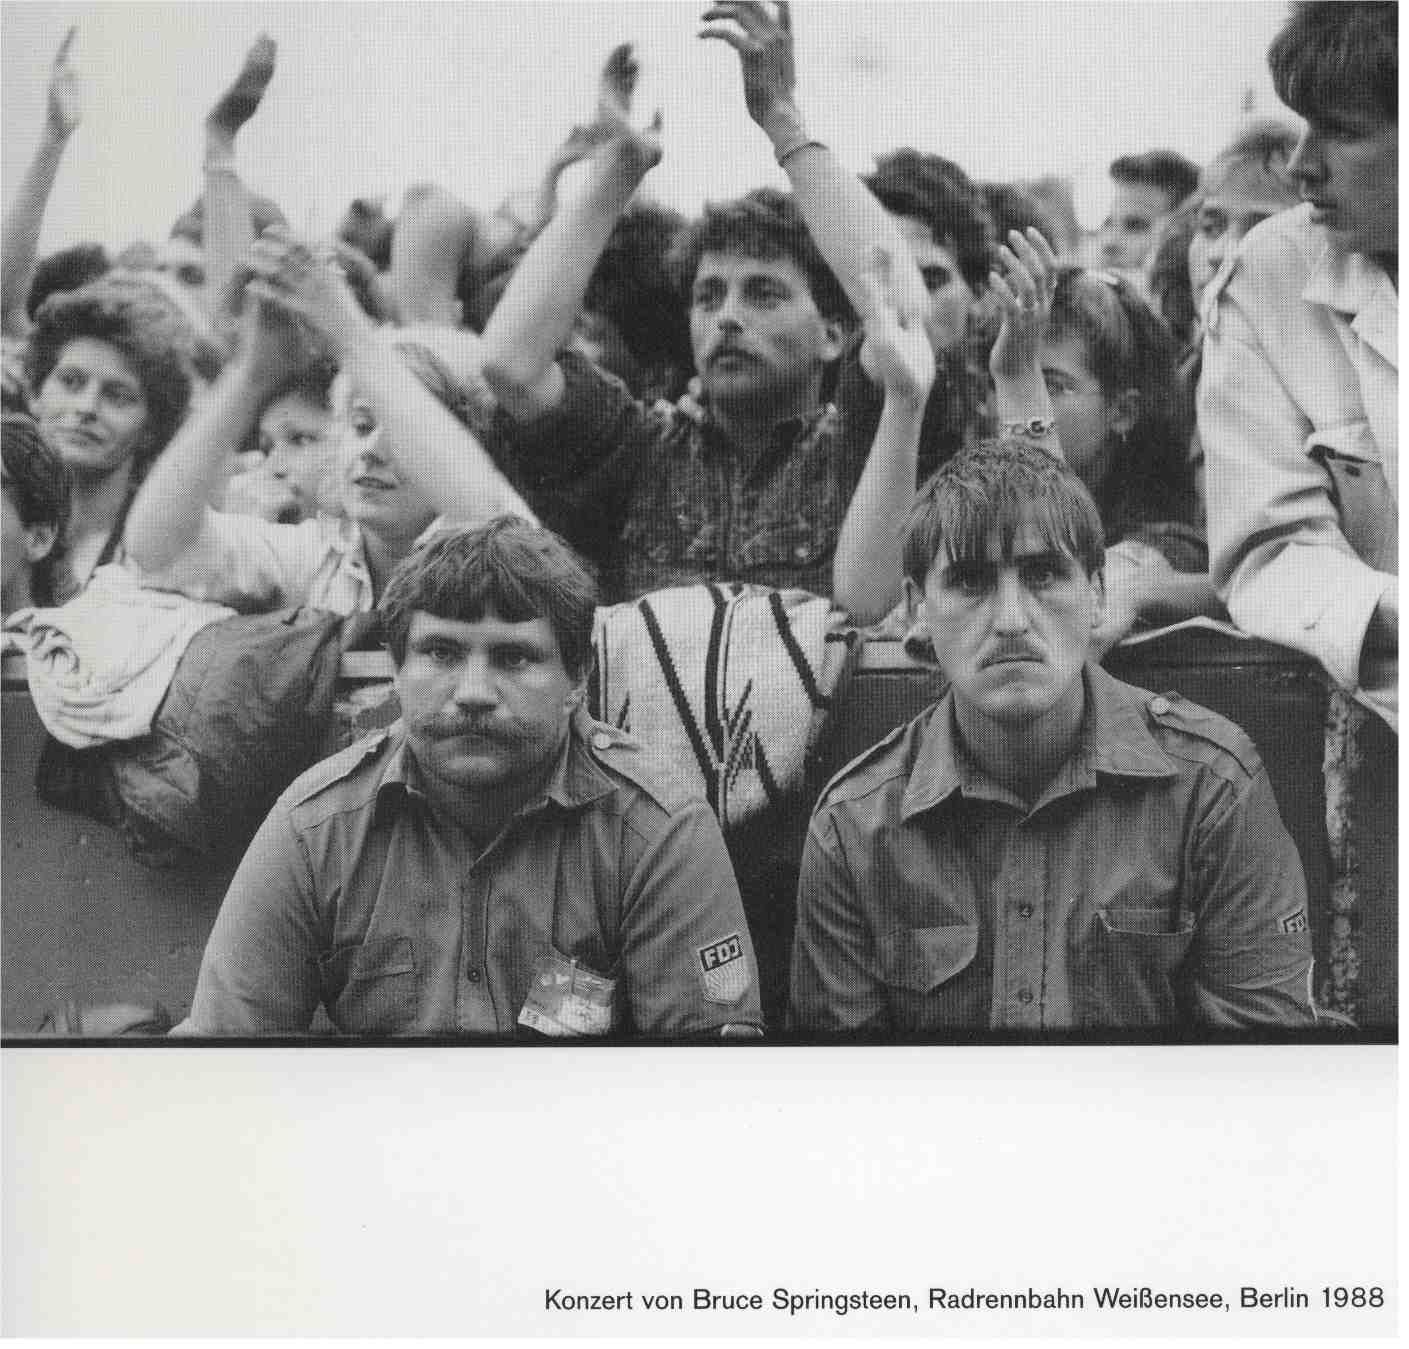 FDJactivists at a Bruce Springsteen concert in East